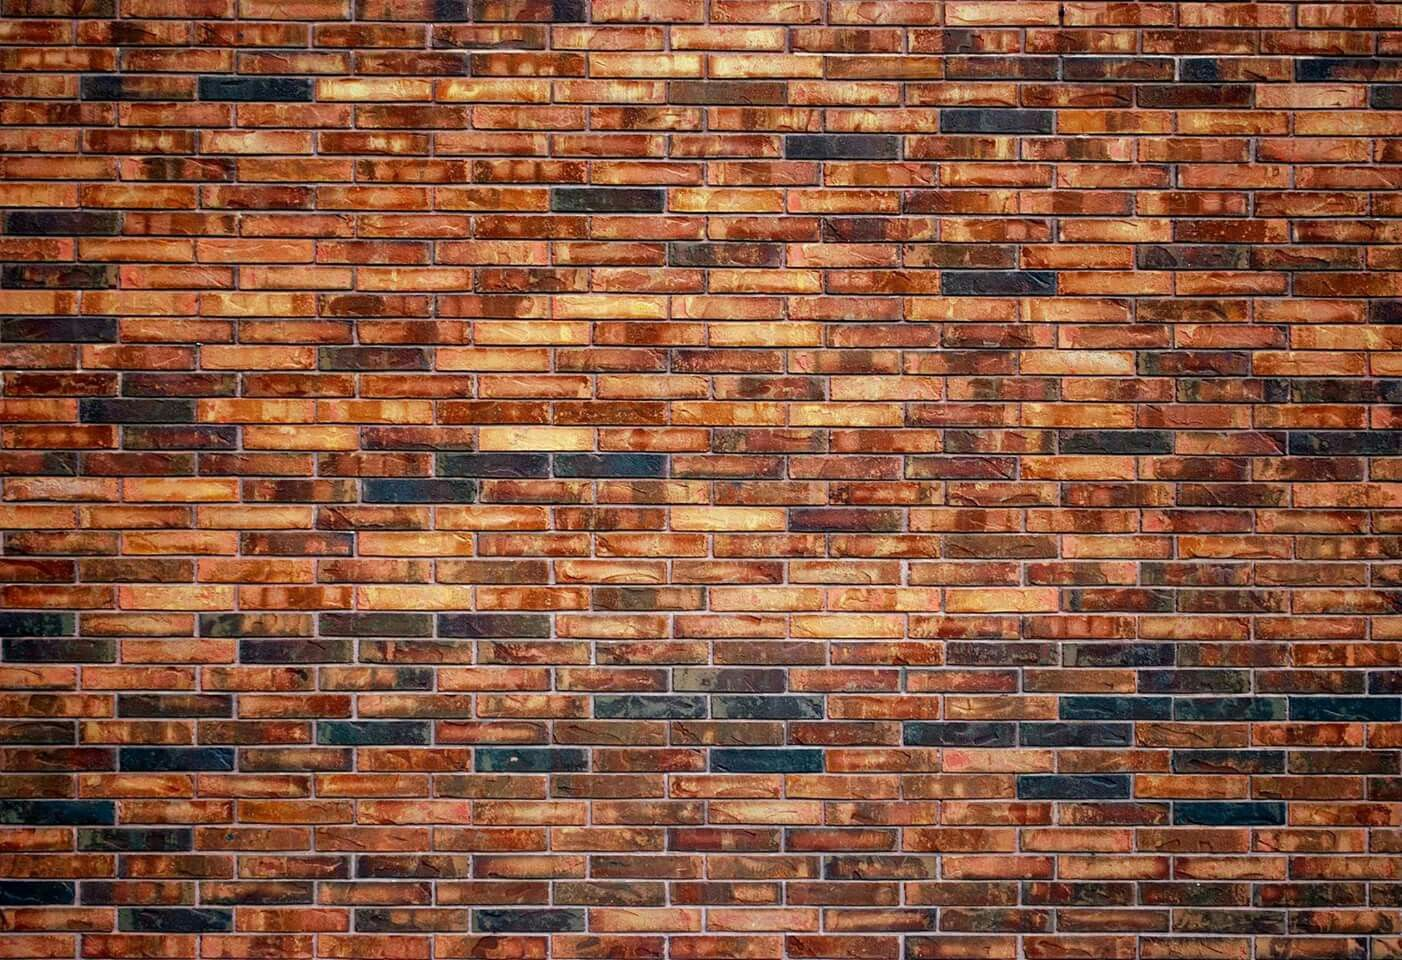 Unfinished brick wall texture for creating environment texture maps - Brick Wall Mapping Textures